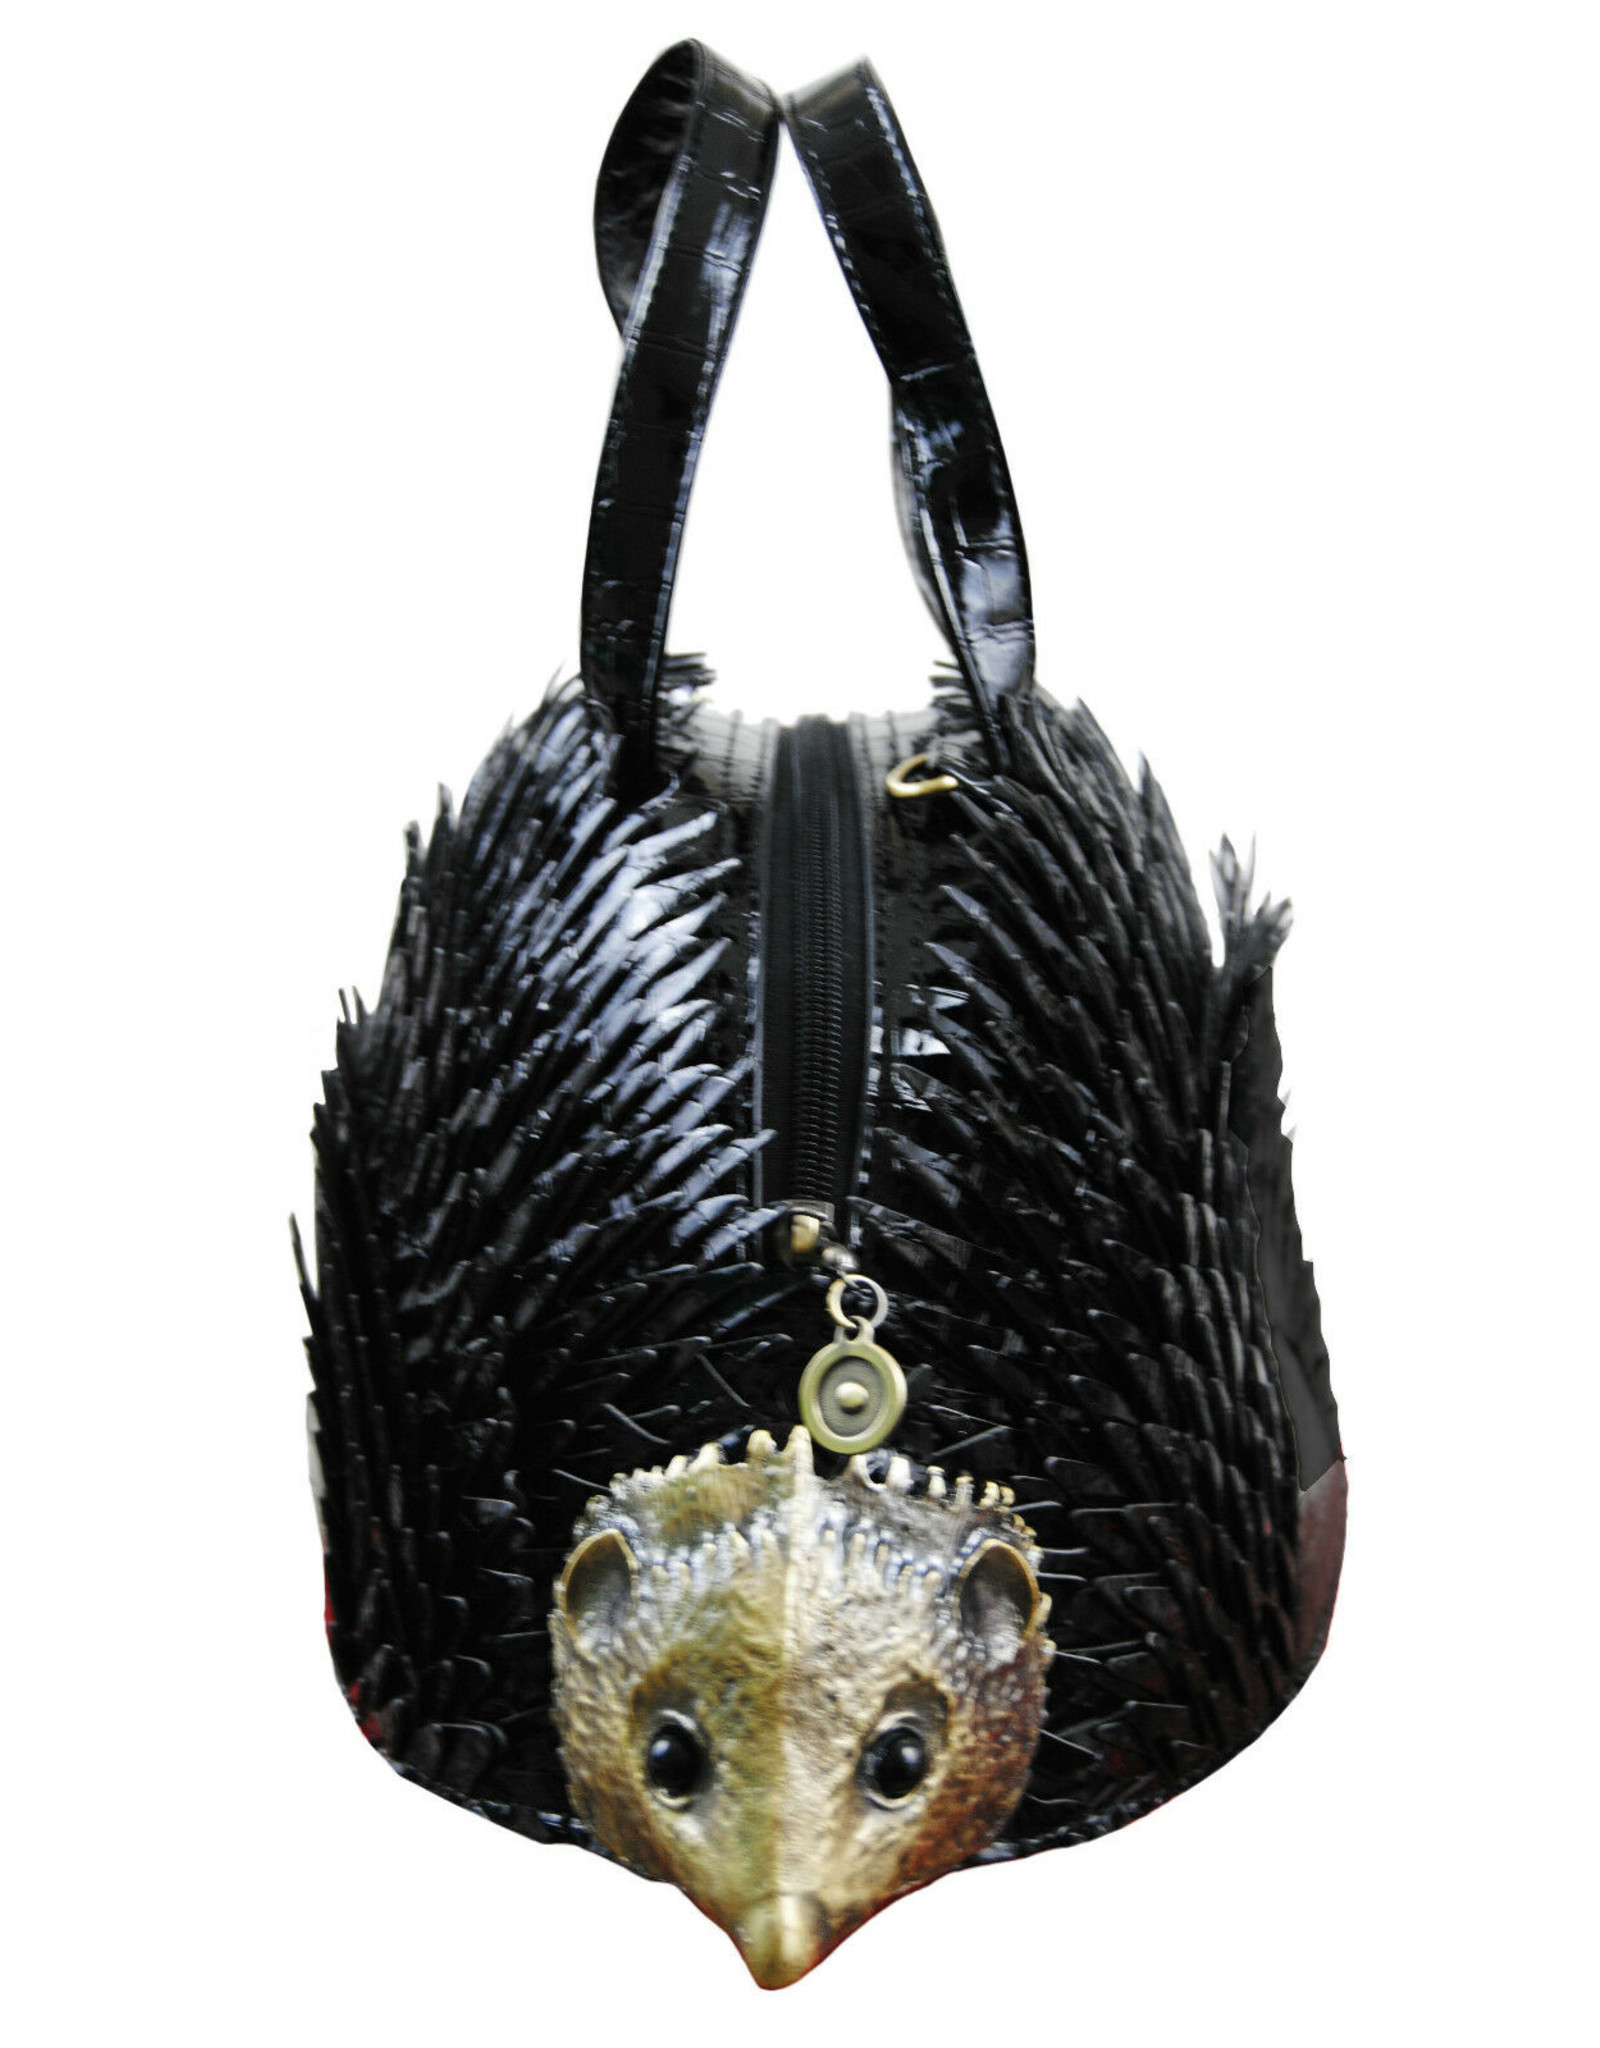 Magic Bags Fantasy tassen en portemonnees - Fantasy handtas Egel